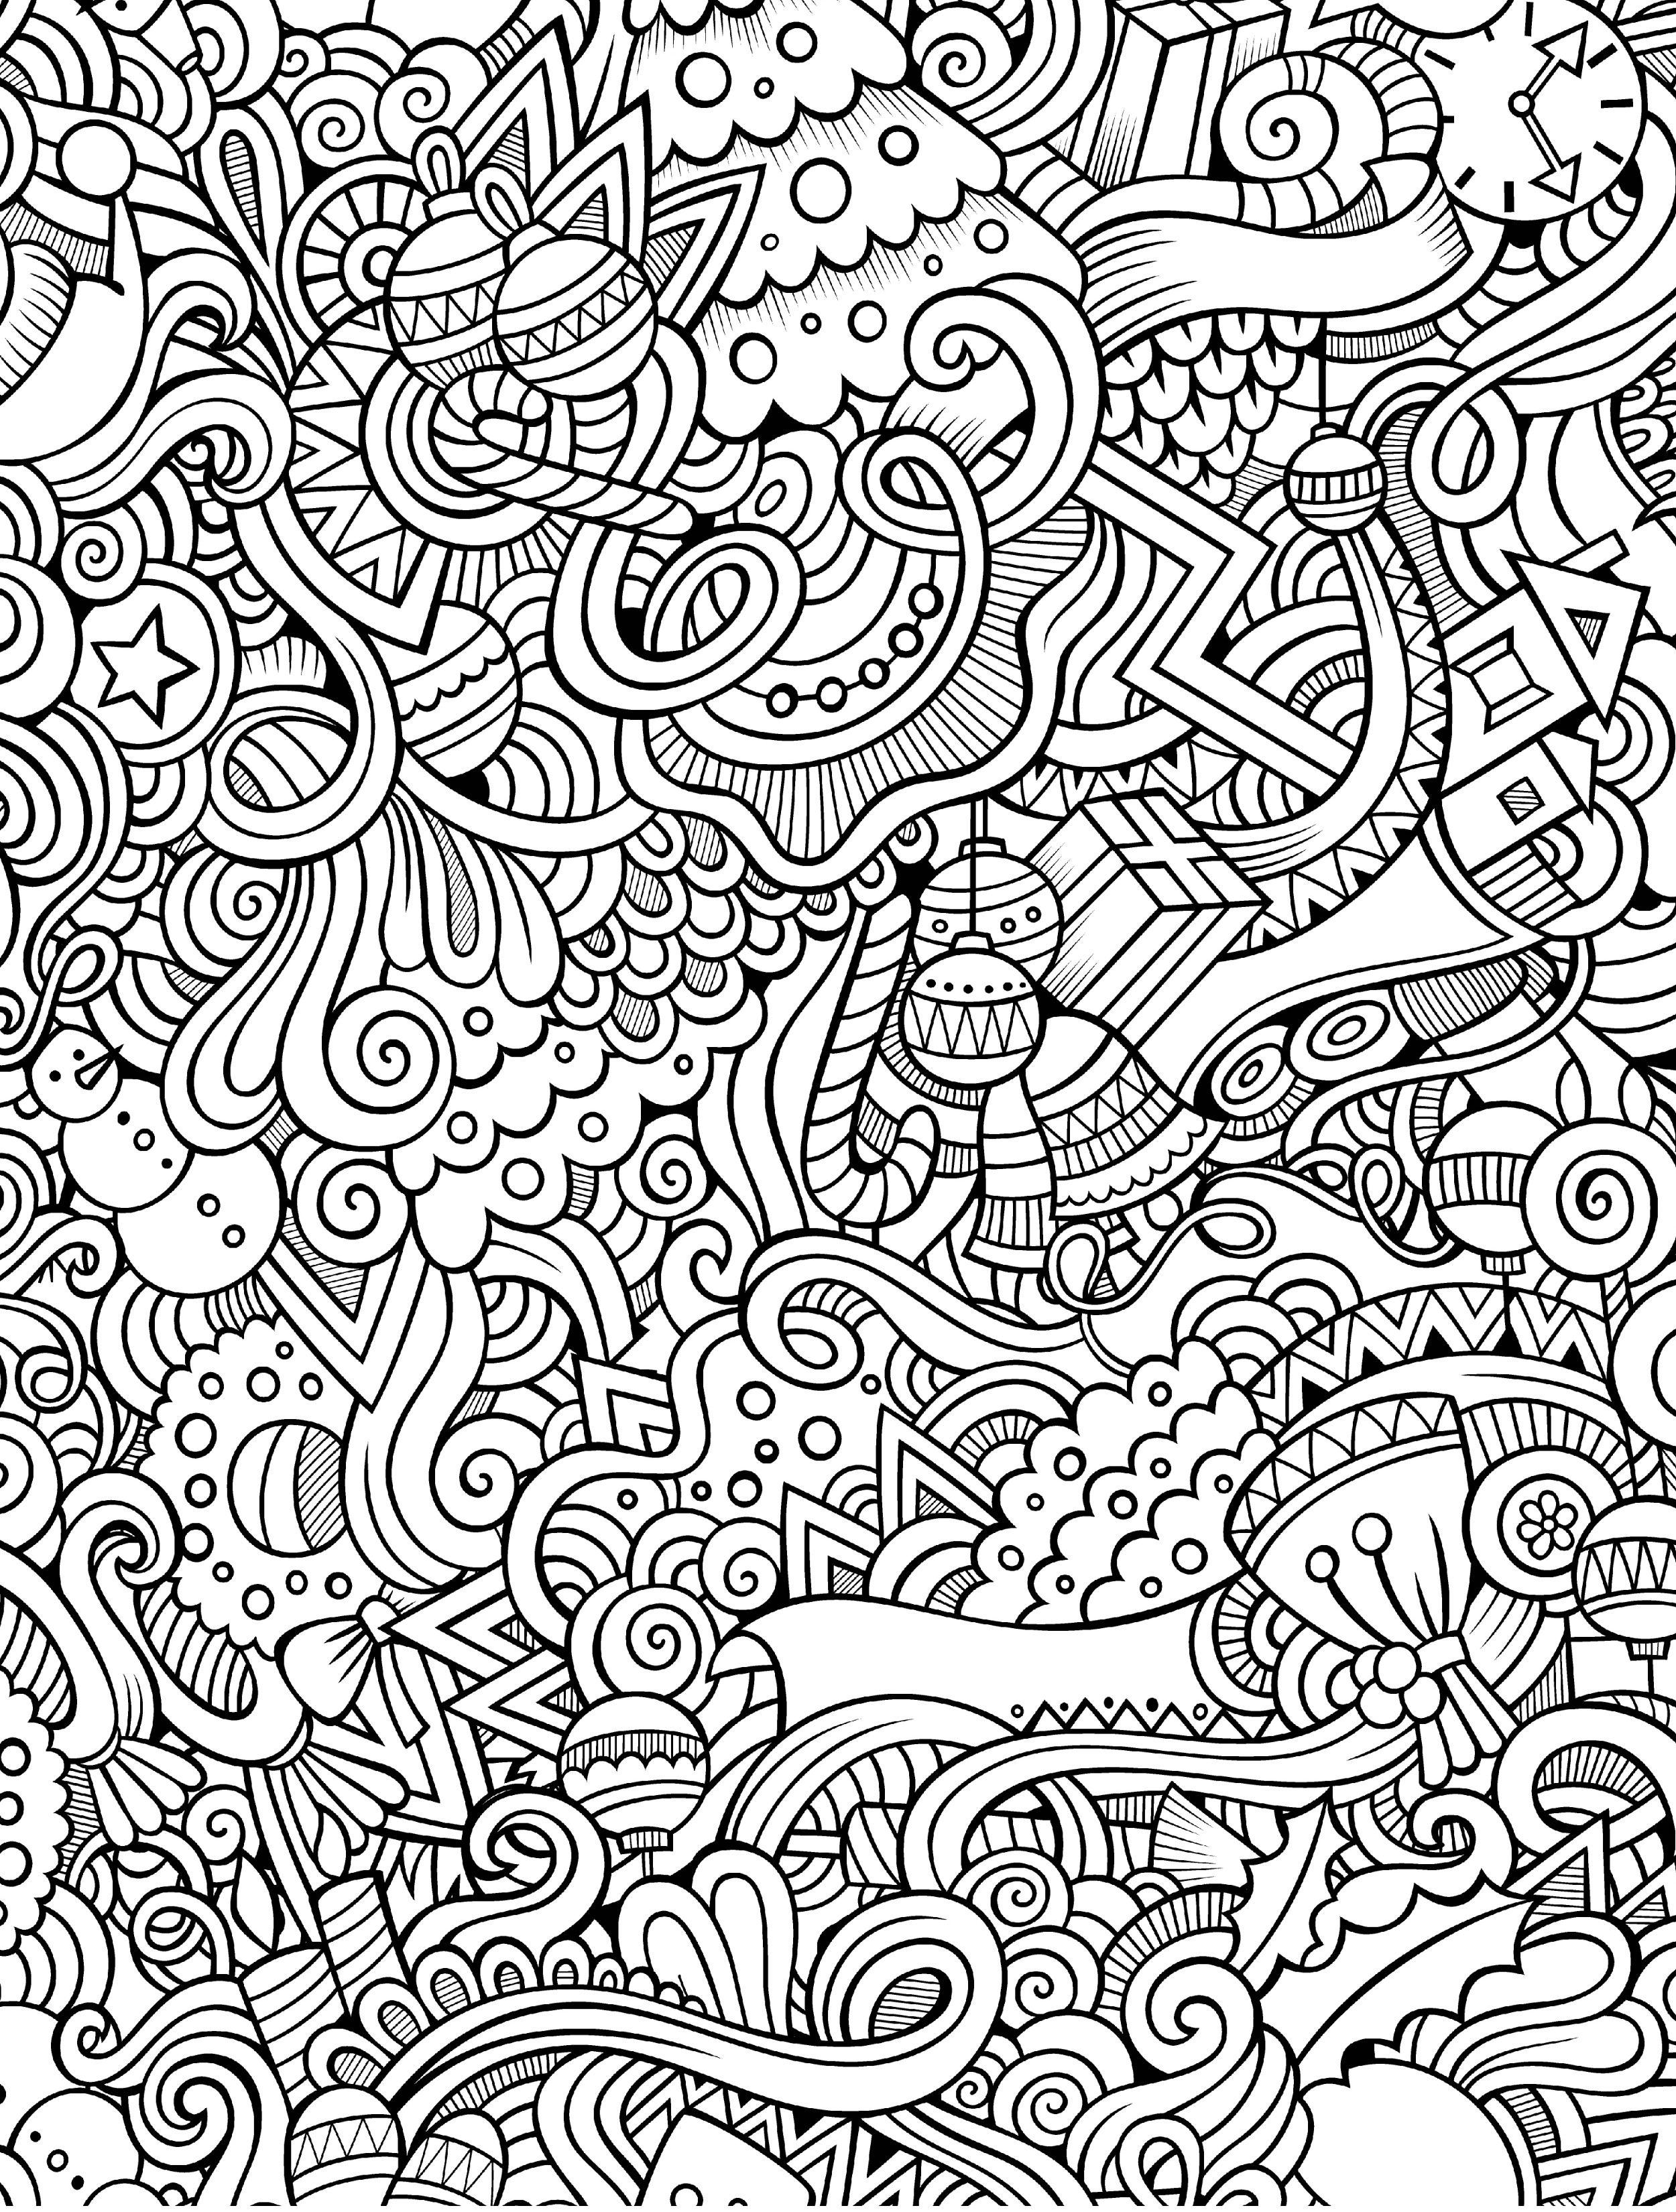 Free Downloadable Coloring Pages Weird Free Downloadable ...